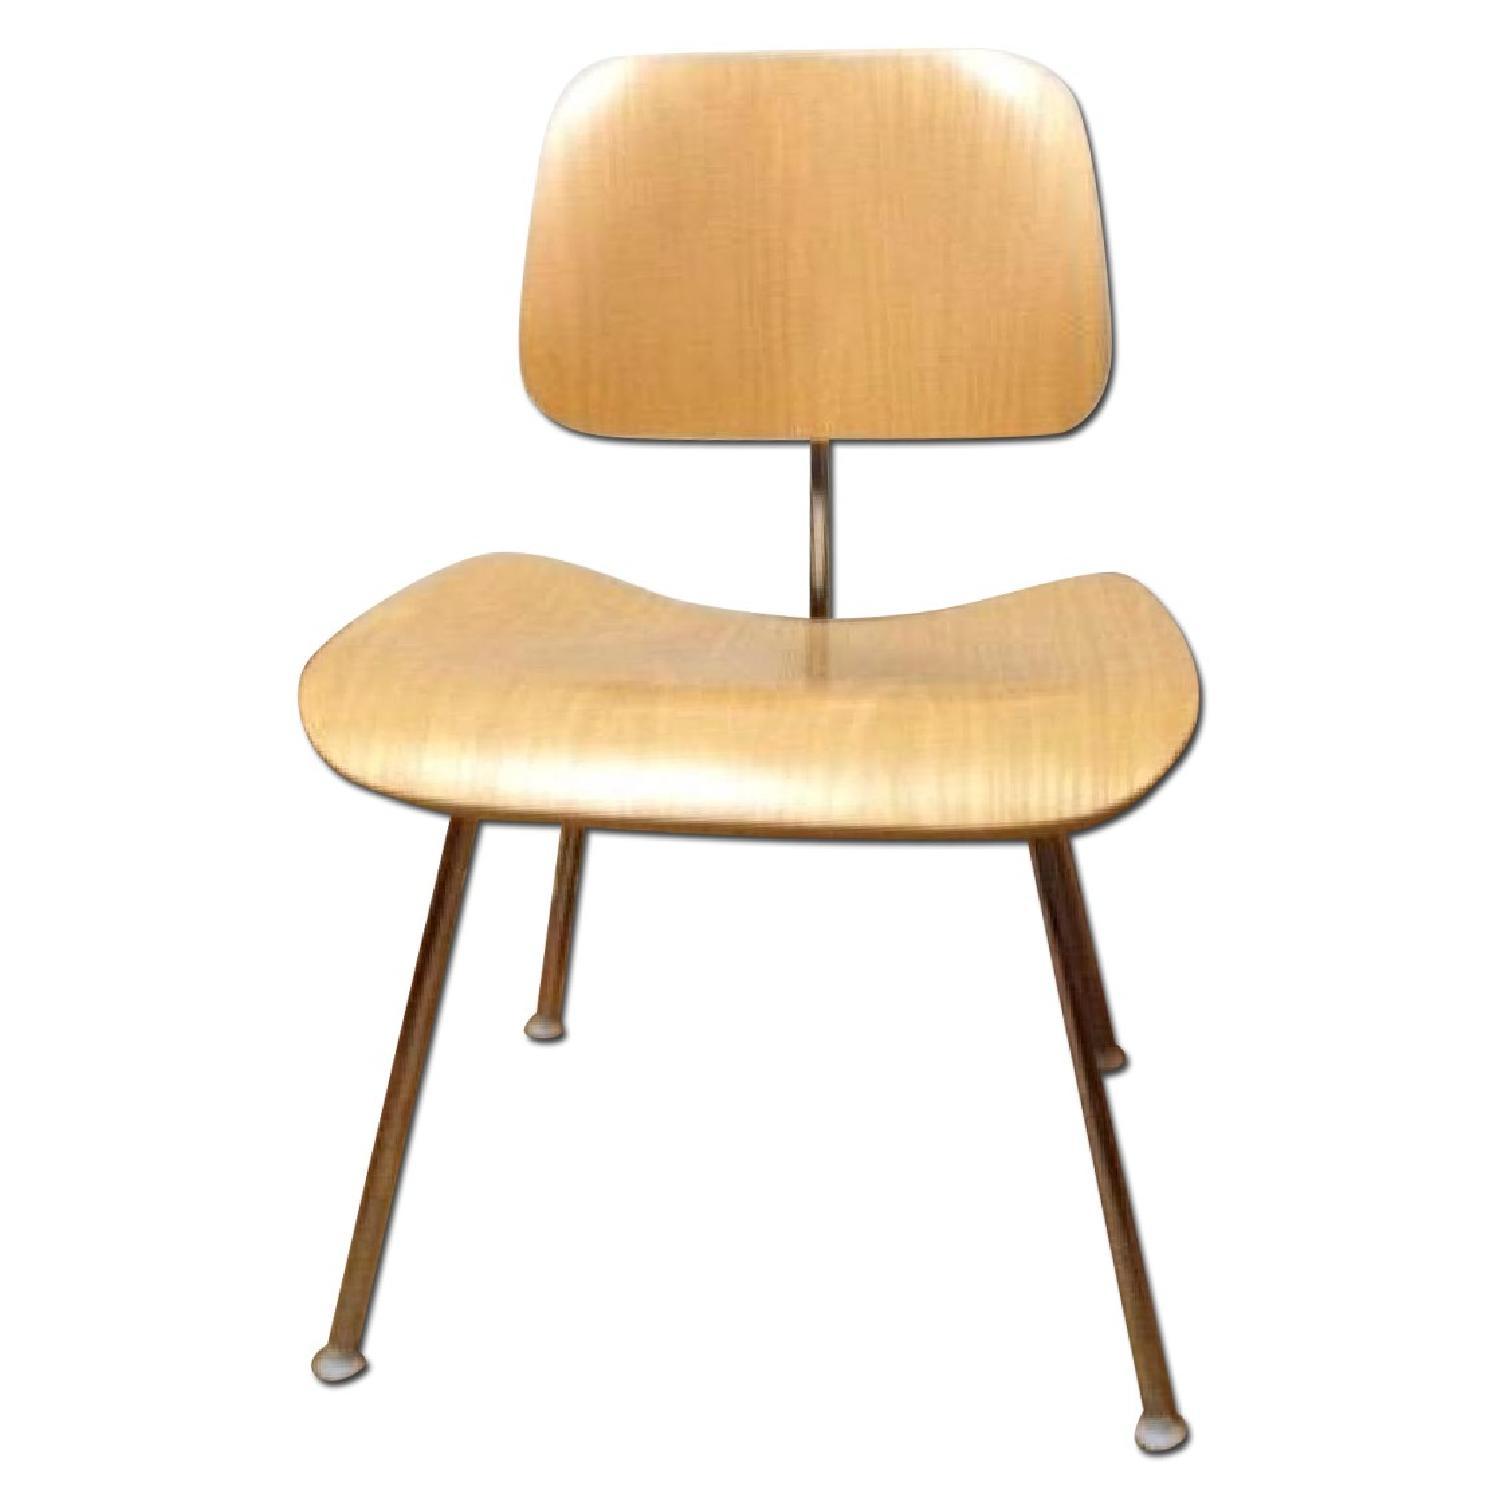 Charles and Ray Eames Dining Chairs - Pair - image-0